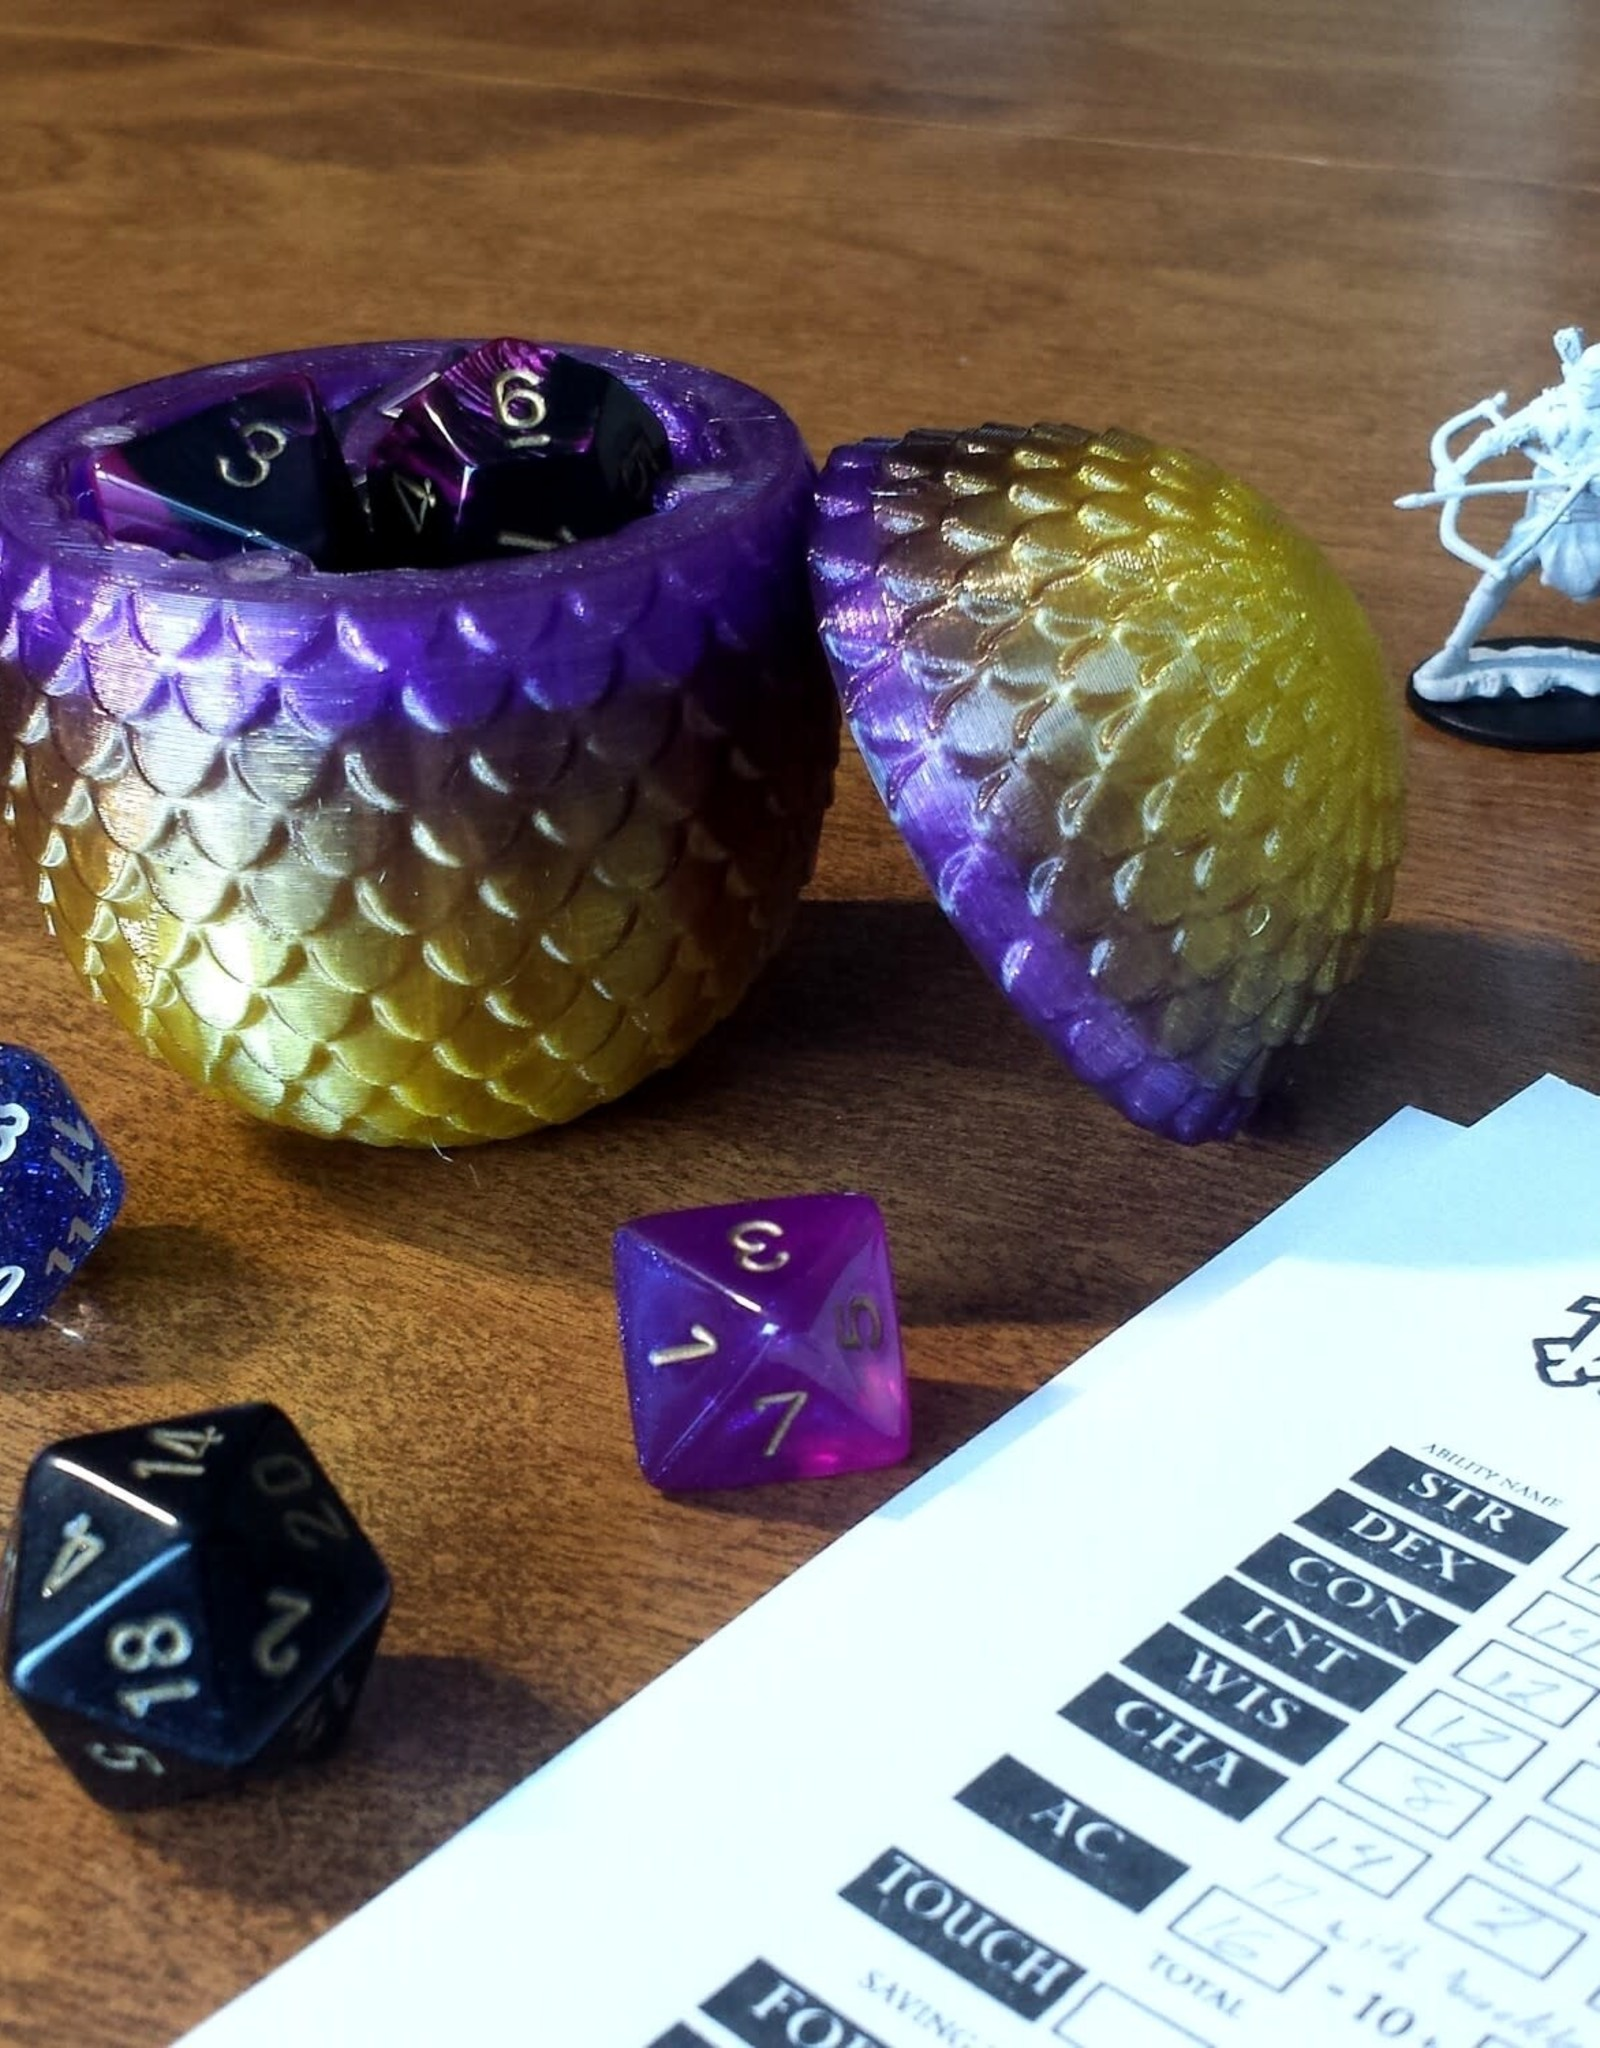 Fantasy by Numbers Dragon Egg - Med, Premium Storm